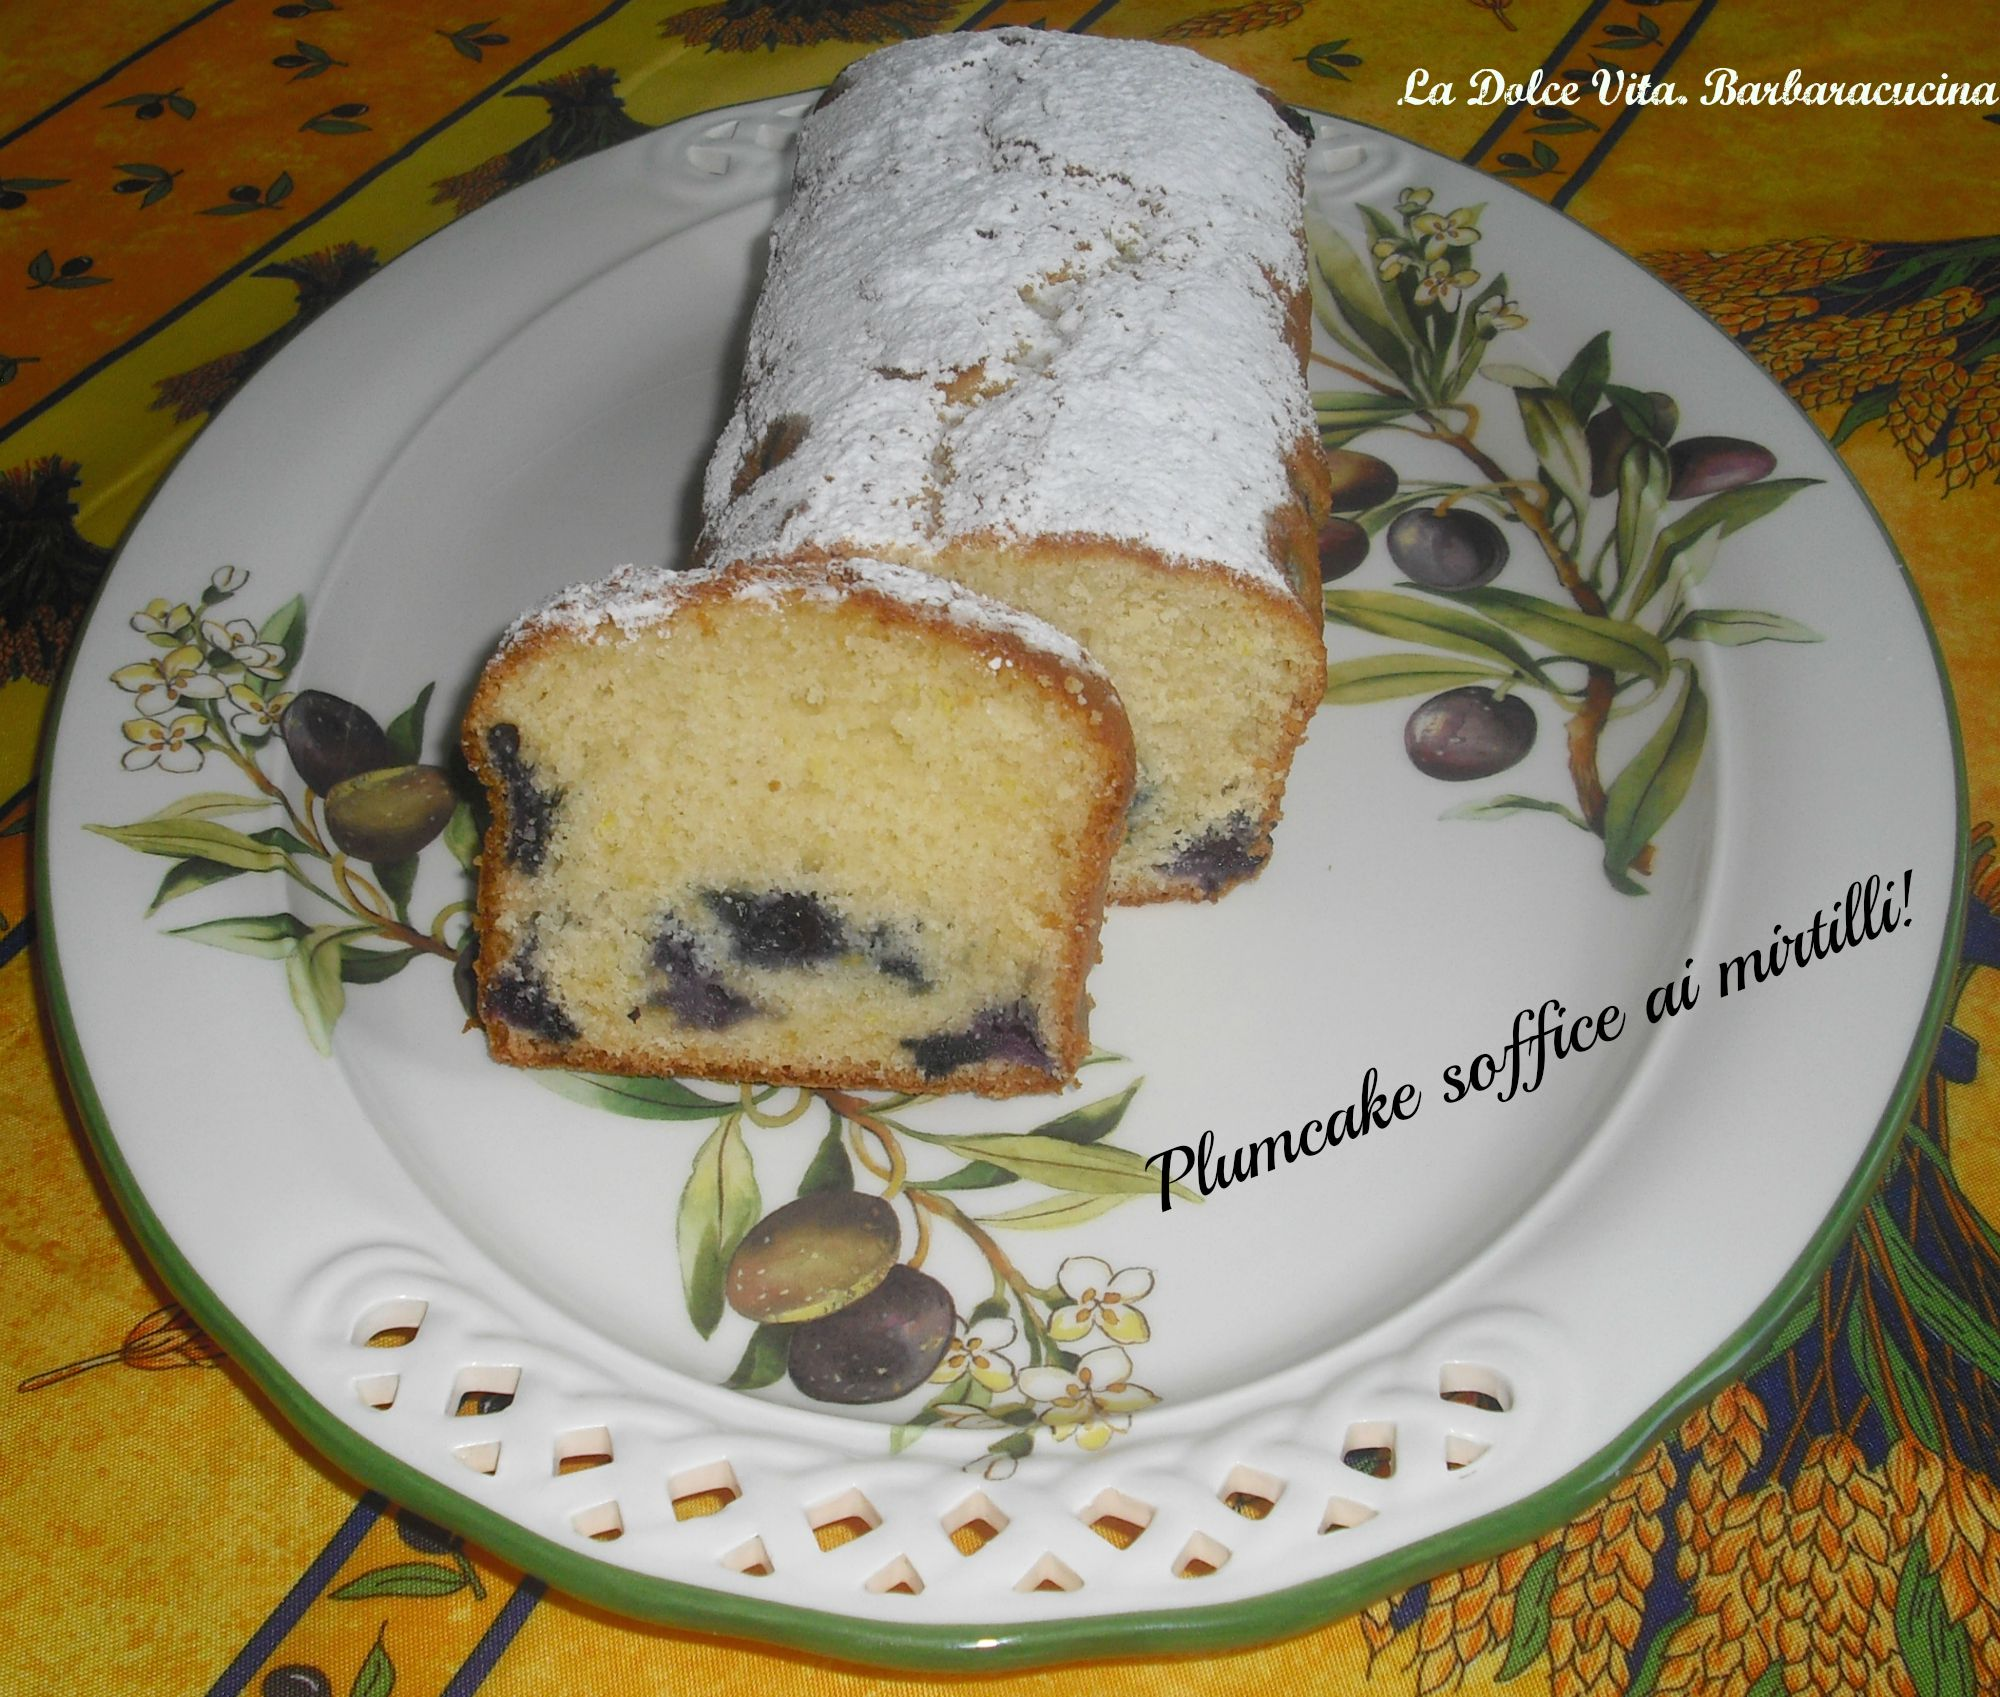 plumcake soffice ai mirtilli 3